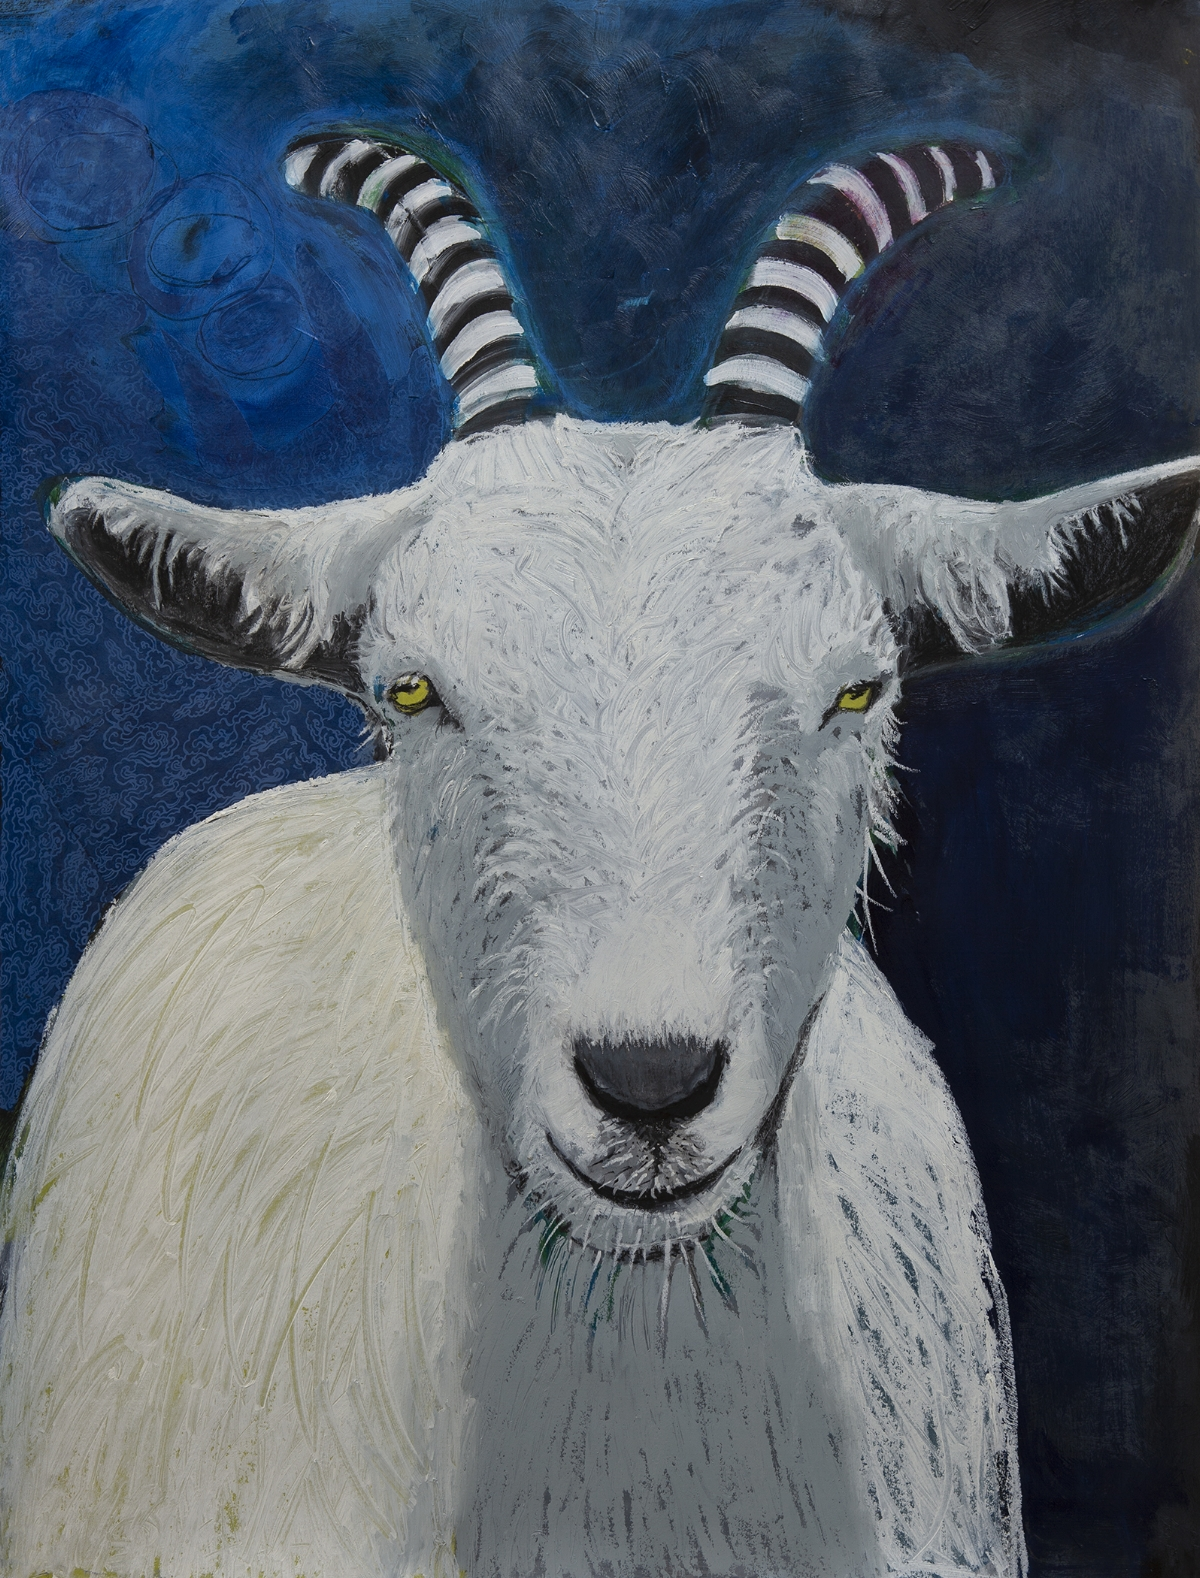 It all started when. . . - I saw a picture of this goat and fell in love with him. Though I don't normally paint animals, something about him spoke to me and I roughly sketch him on big paper. After laying down the background blue I looked at him hanging on the wall for about a month thinking,